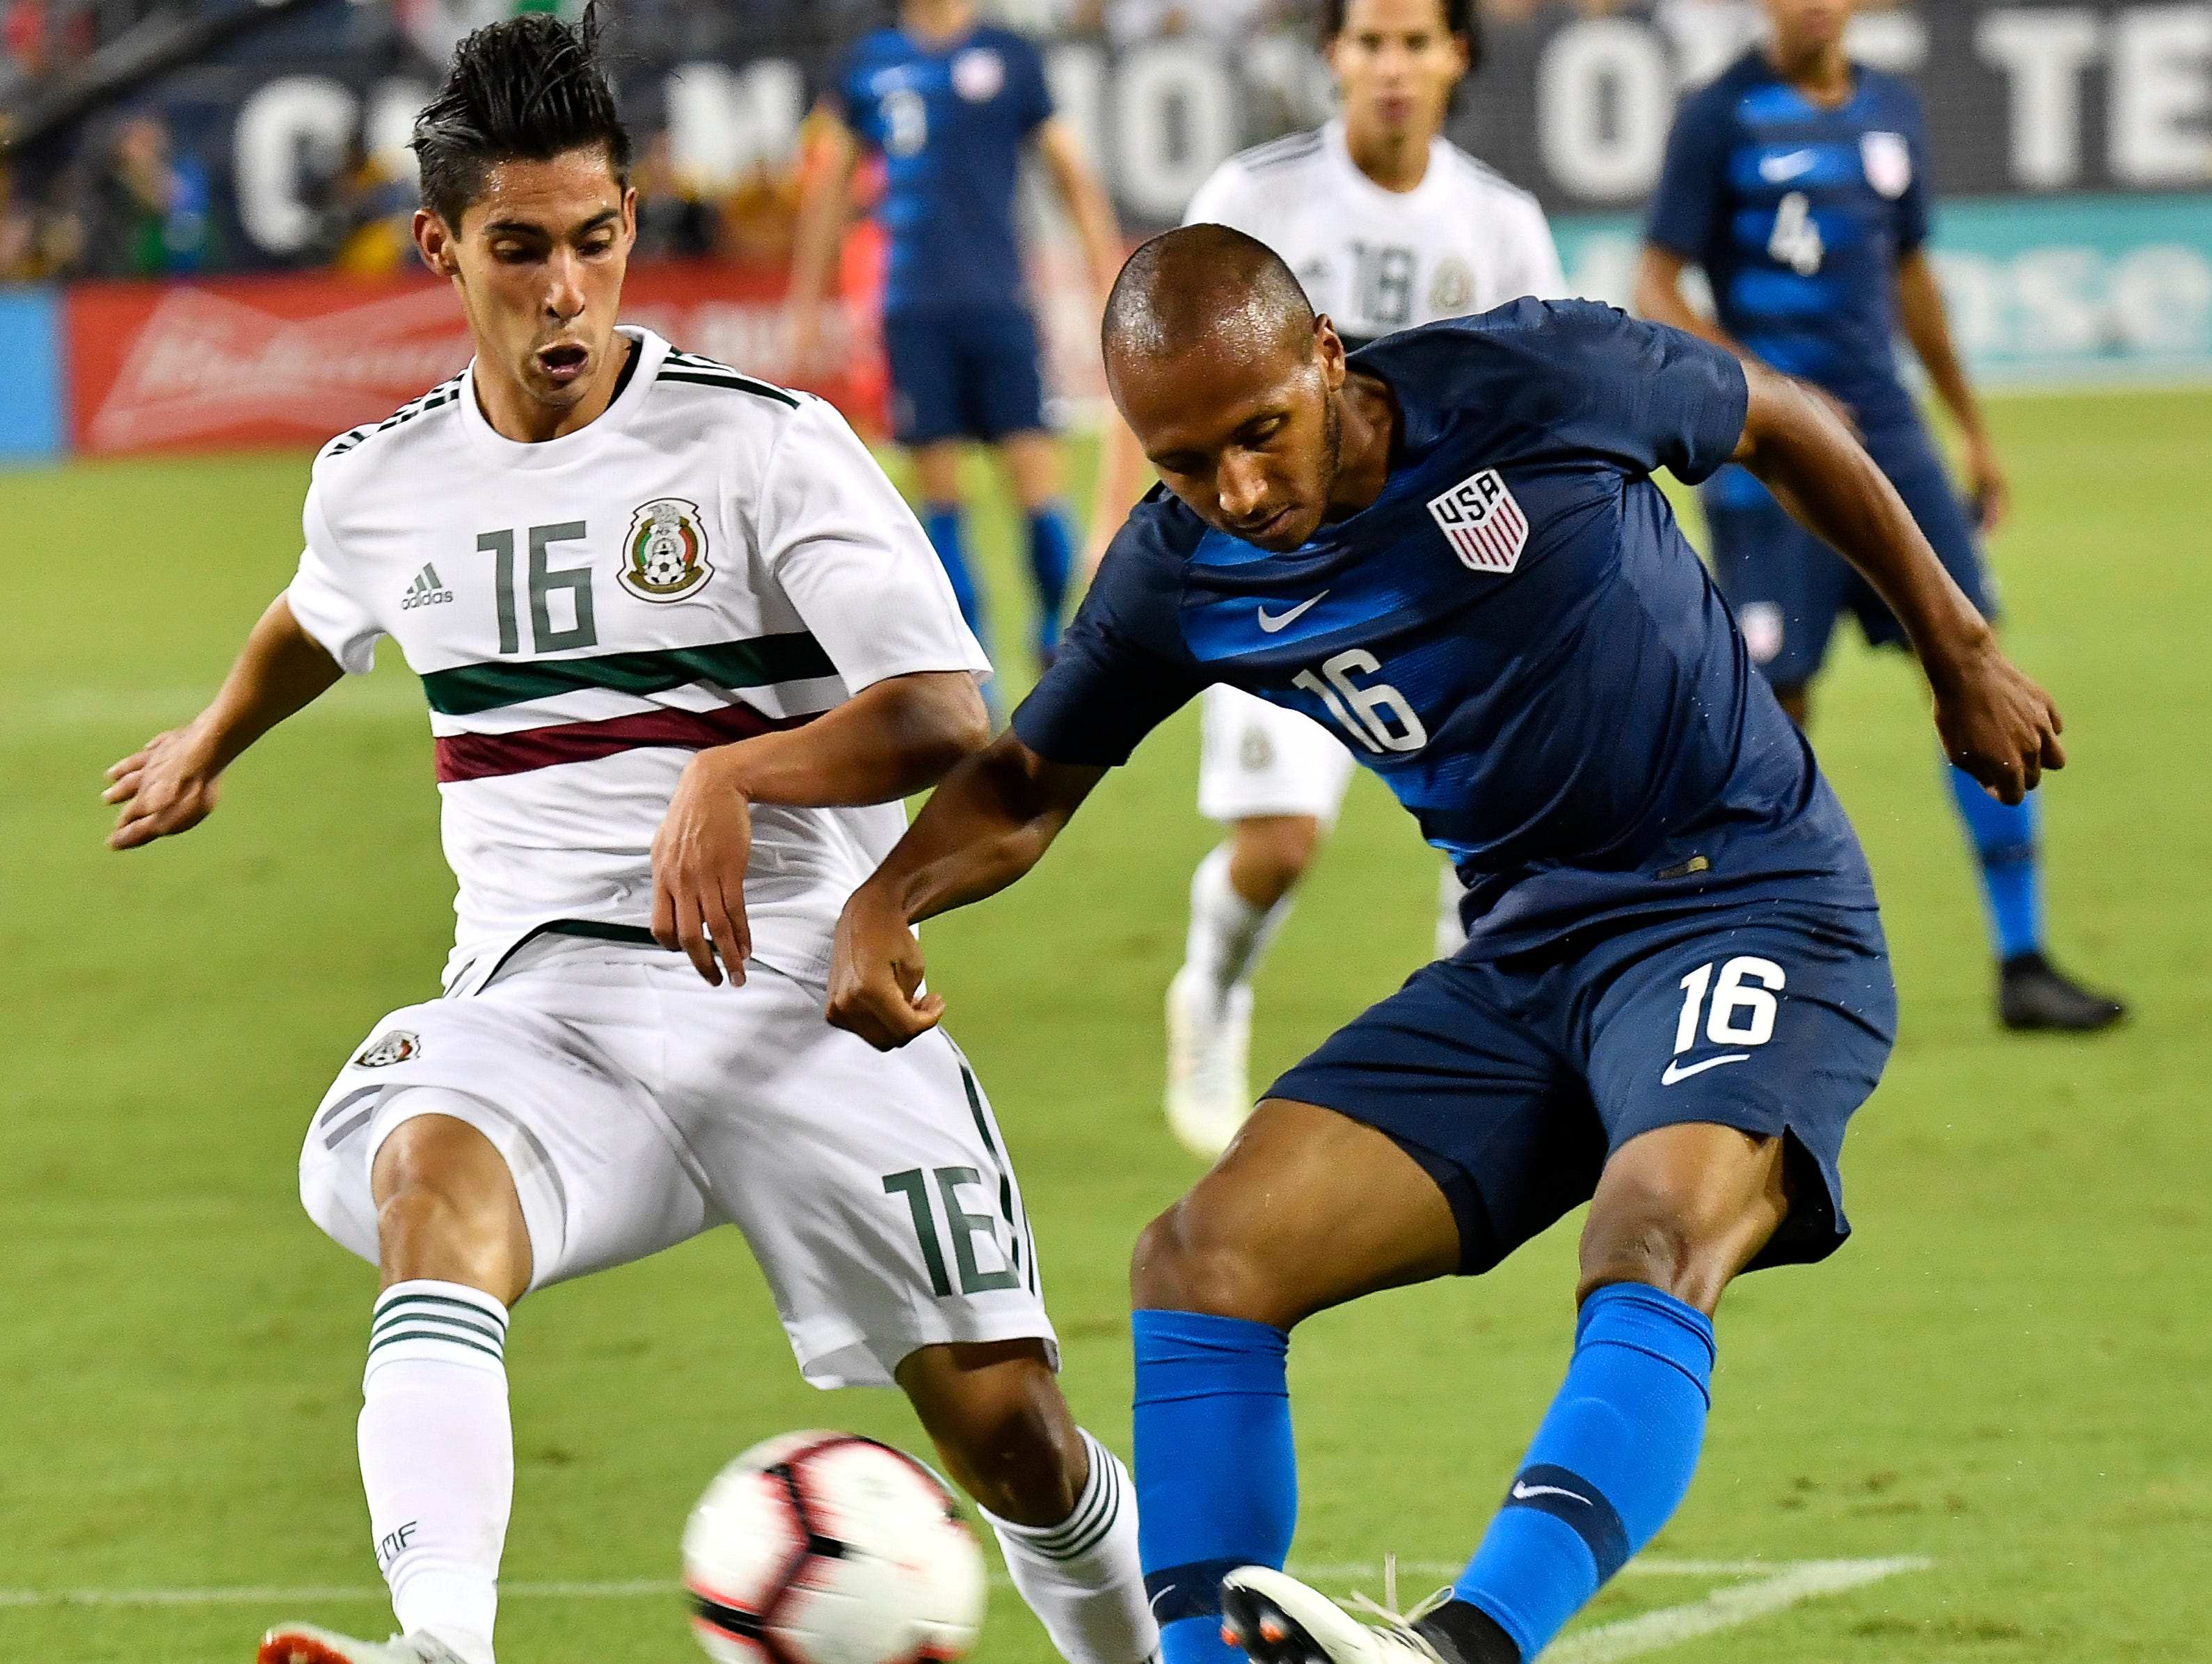 USA midfielder Julian Green (16) kicks the ball past Mexico midfielder Erick Aguirre (16) during the second half of their game at Nissan Stadium Tuesday, Sept. 11, 2018, in Nashville, Tenn.